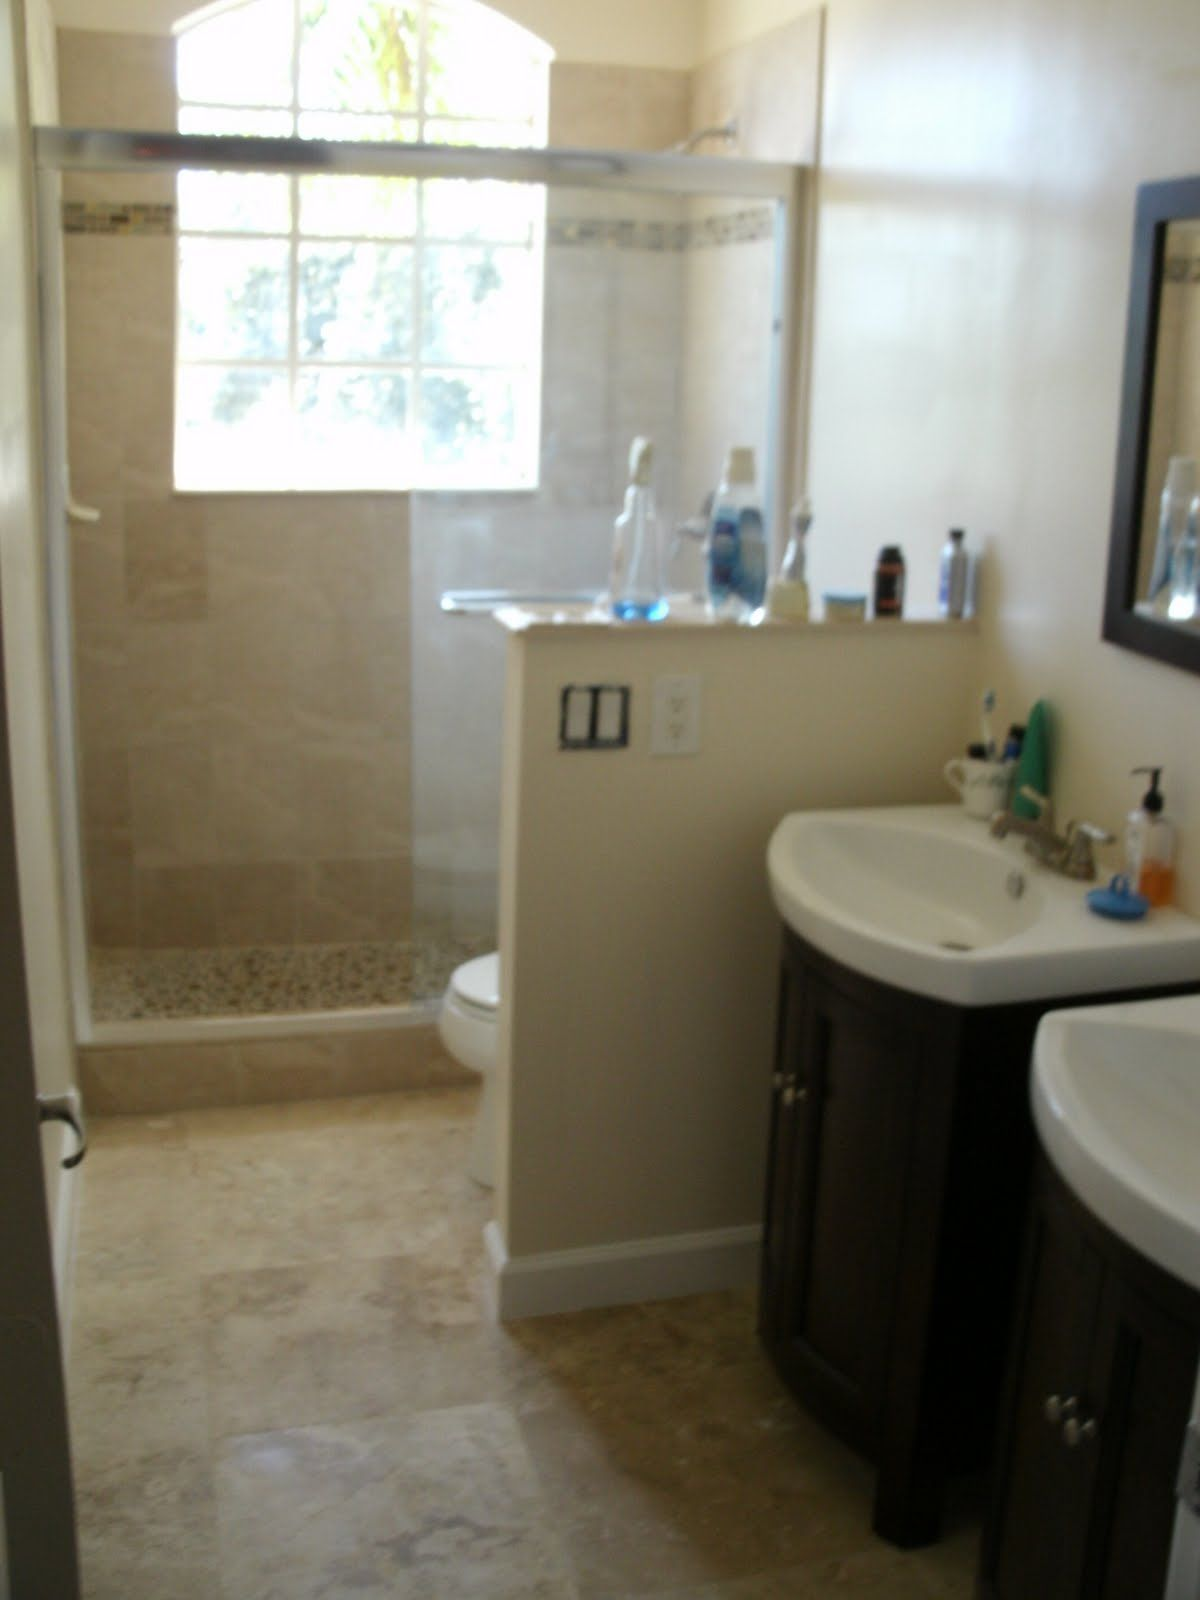 Besf Of Ideas Do It Yourself Bathroom Remodel Small Bath Remodel Beauteous How Much Does A Small Bathroom Remodel Cost Design Inspiration